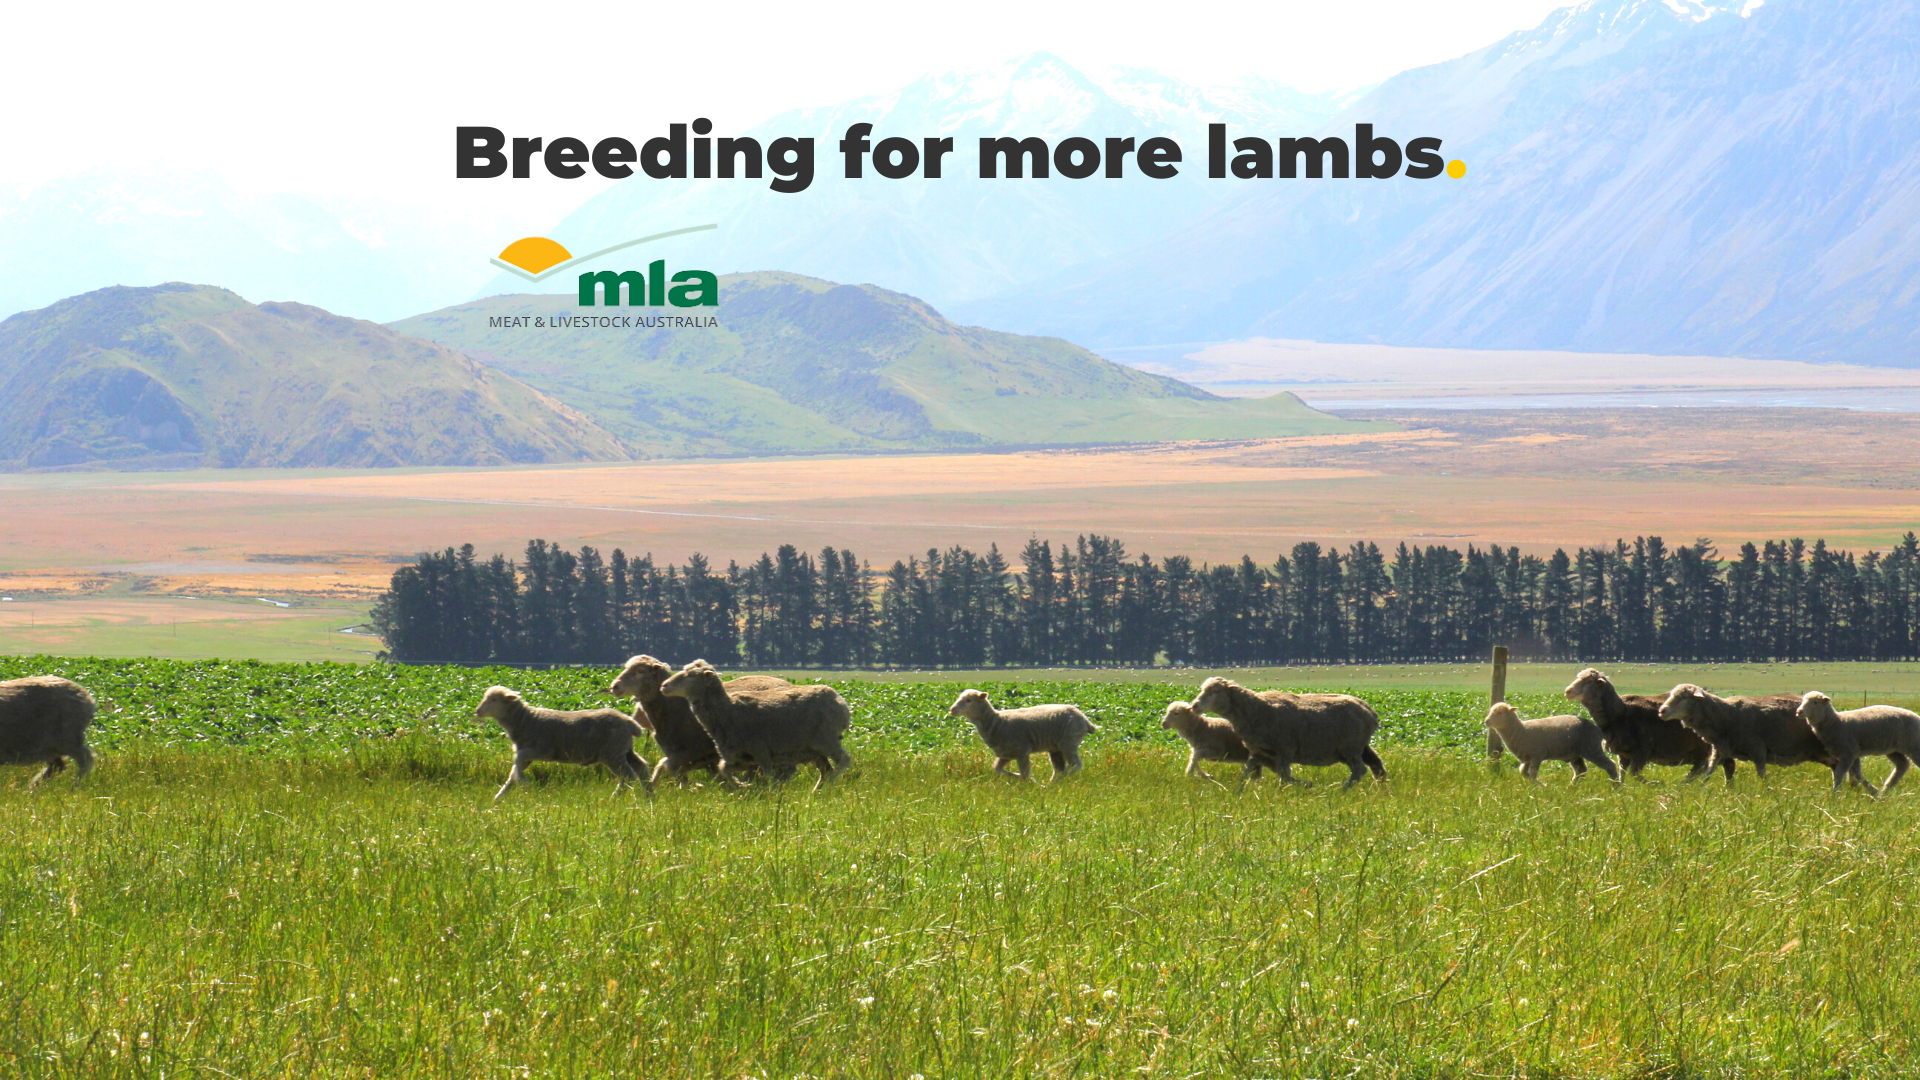 Breeding for more lambs with Meat and Livestock Australia